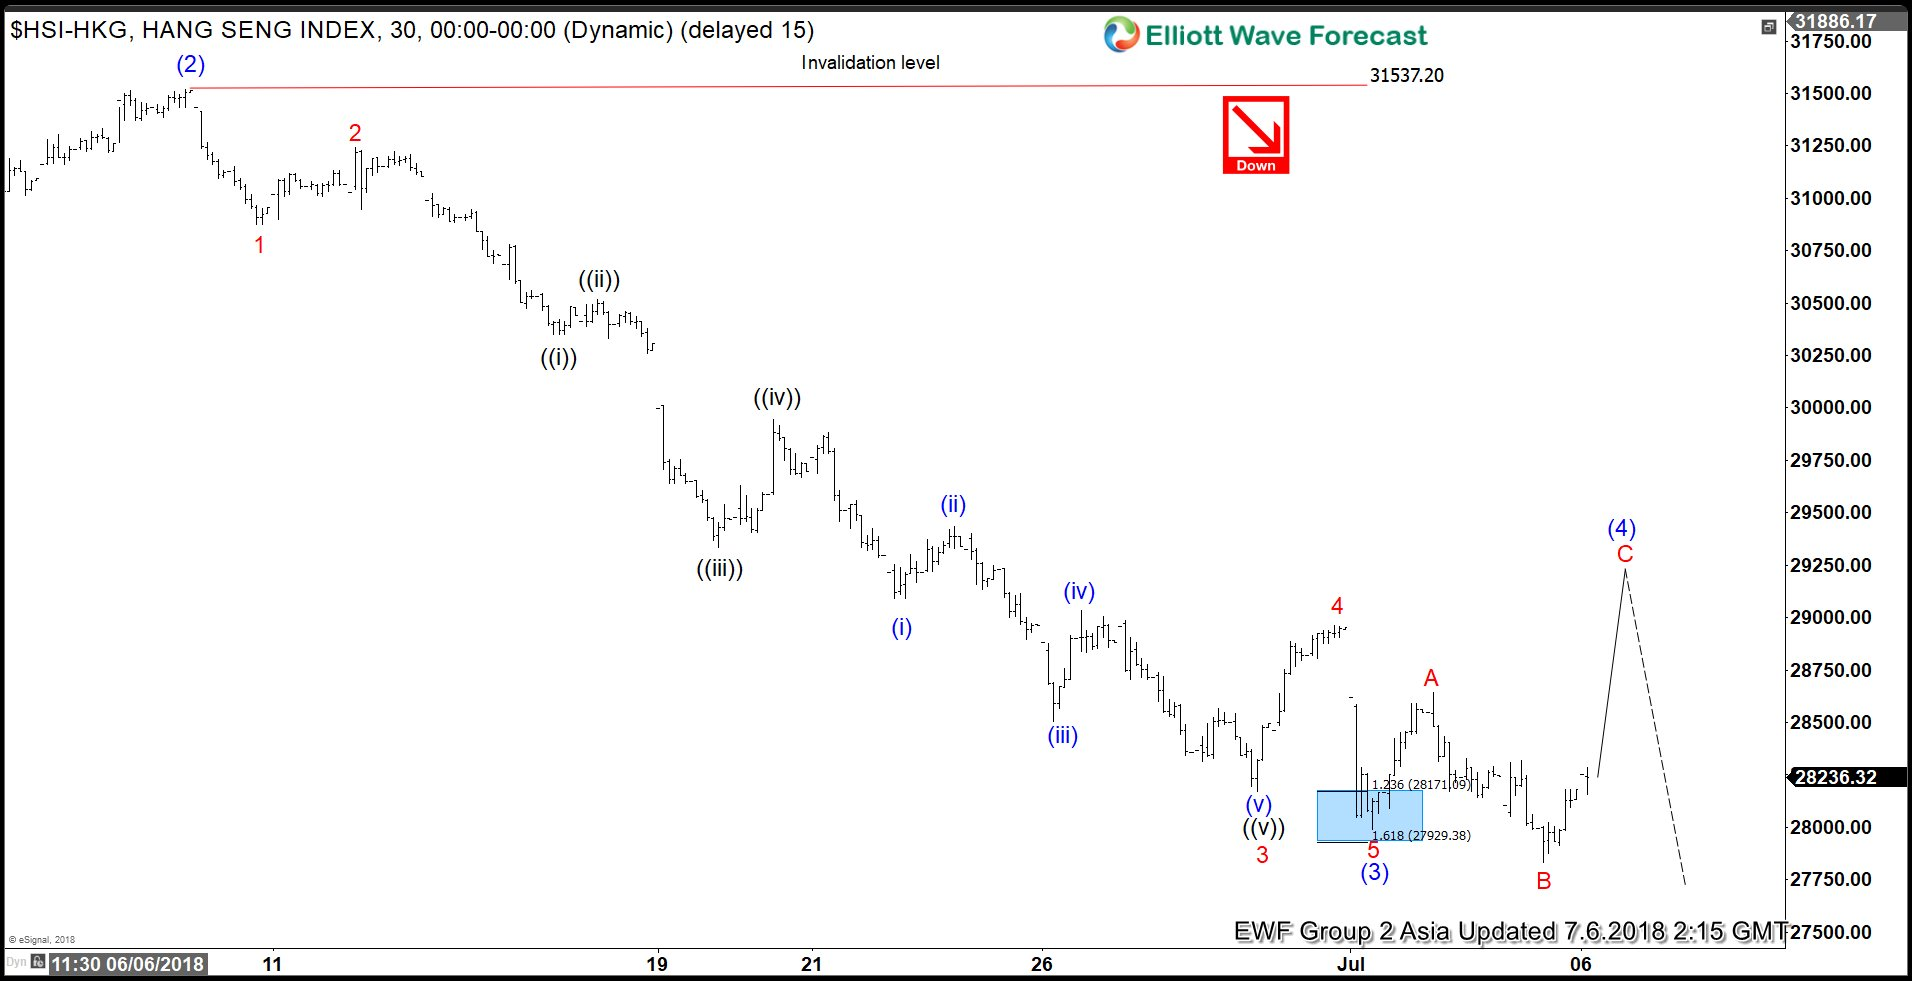 Hang Seng Elliott Wave Analysis: Correction Lower Happening